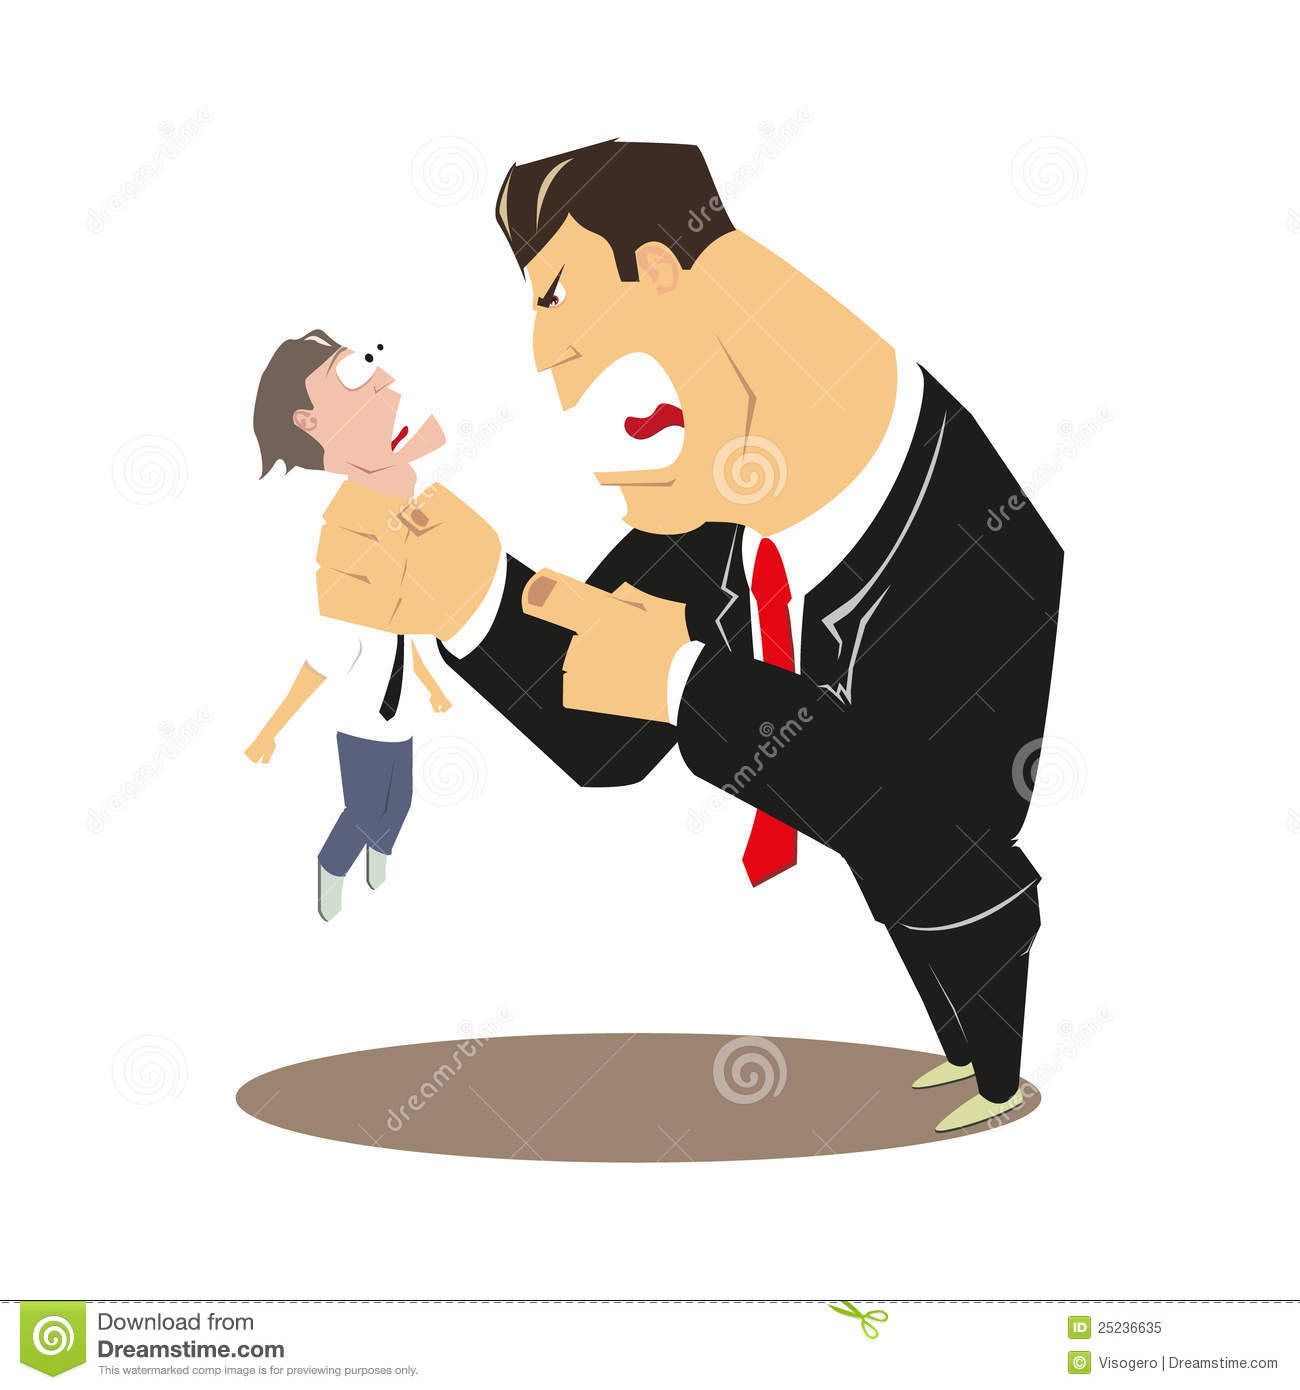 angry manager clipart - photo #27